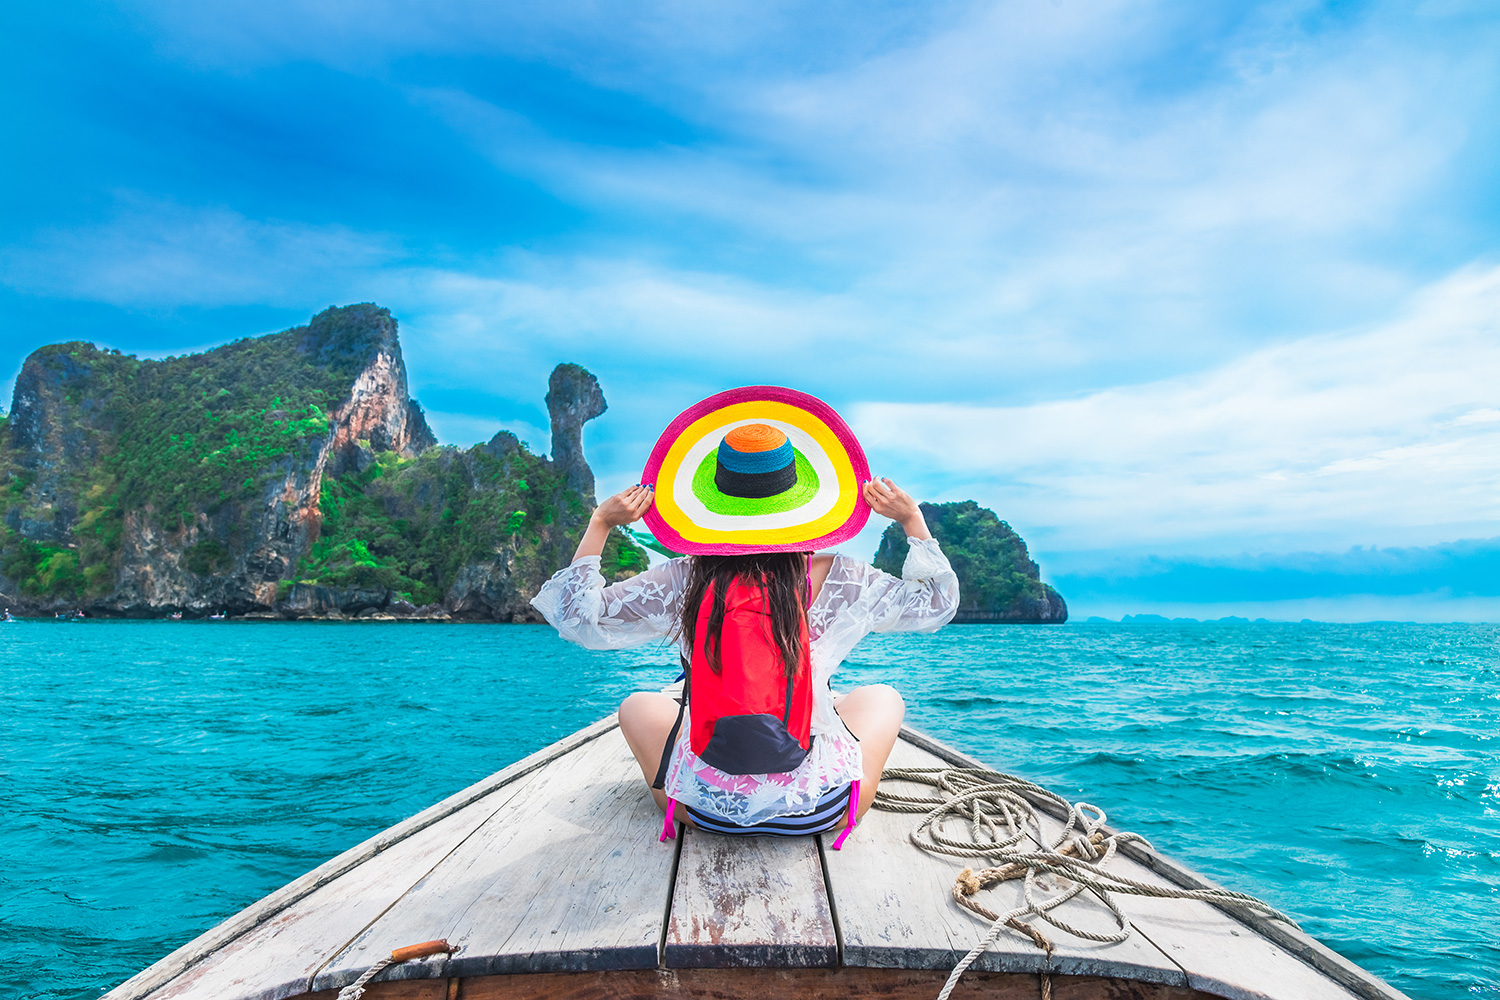 Find yourself: Black Tomato will help you find yourself with their 'Get Lost' service, which helps people disconnect. The travel site takes you to unchartered locations, giving you a genuine feeling of getting lost.